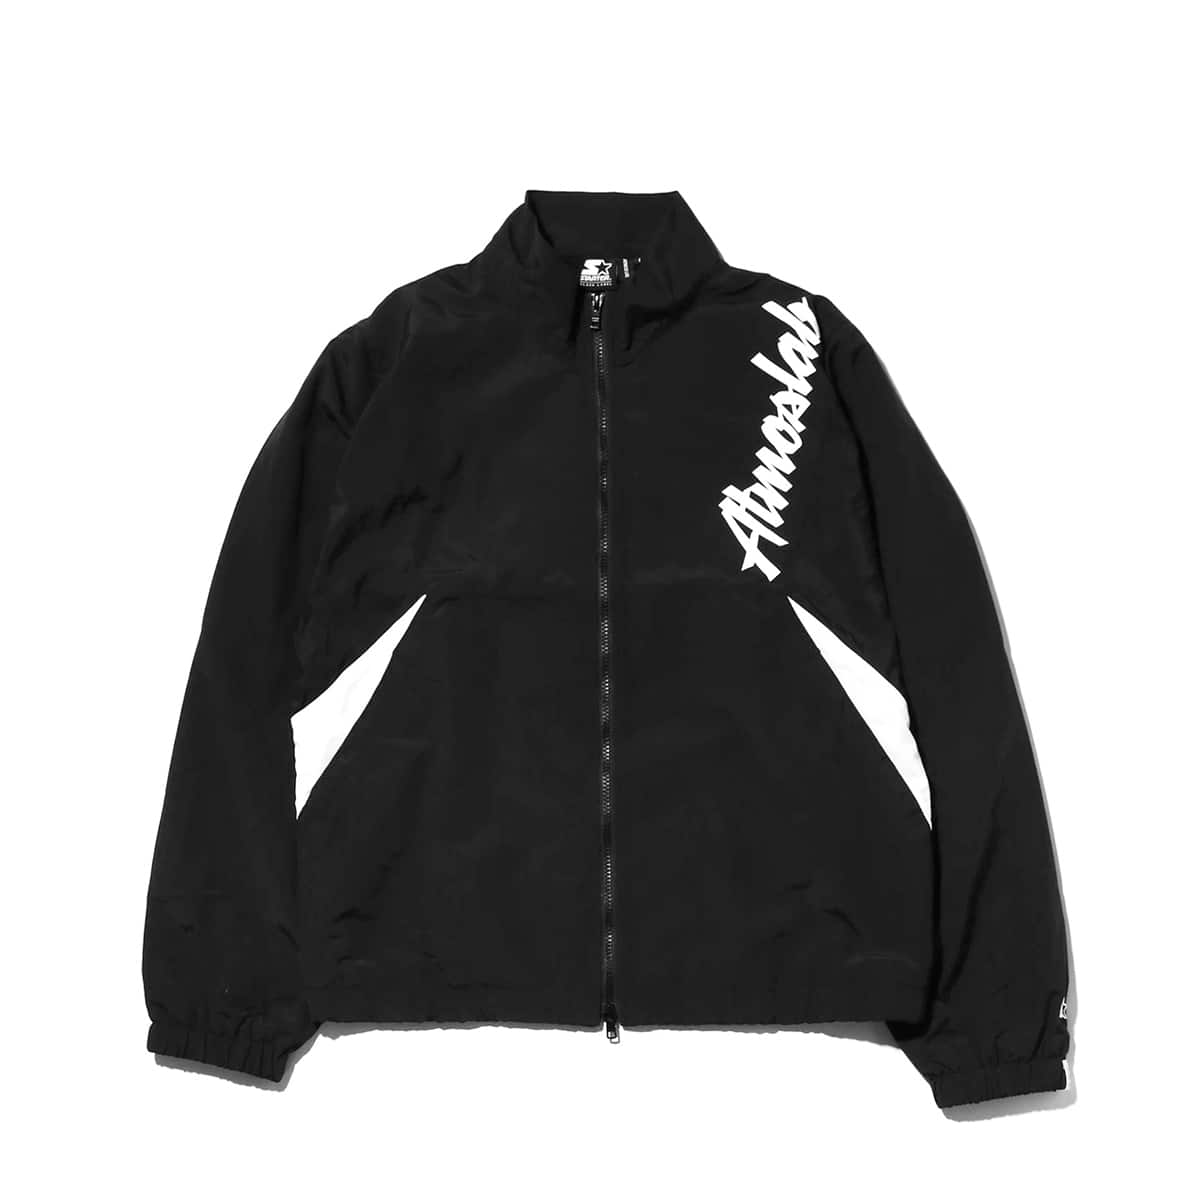 STARTER BLACK LABEL x ATMOS LAB TRACK JACKET  black_photo_large